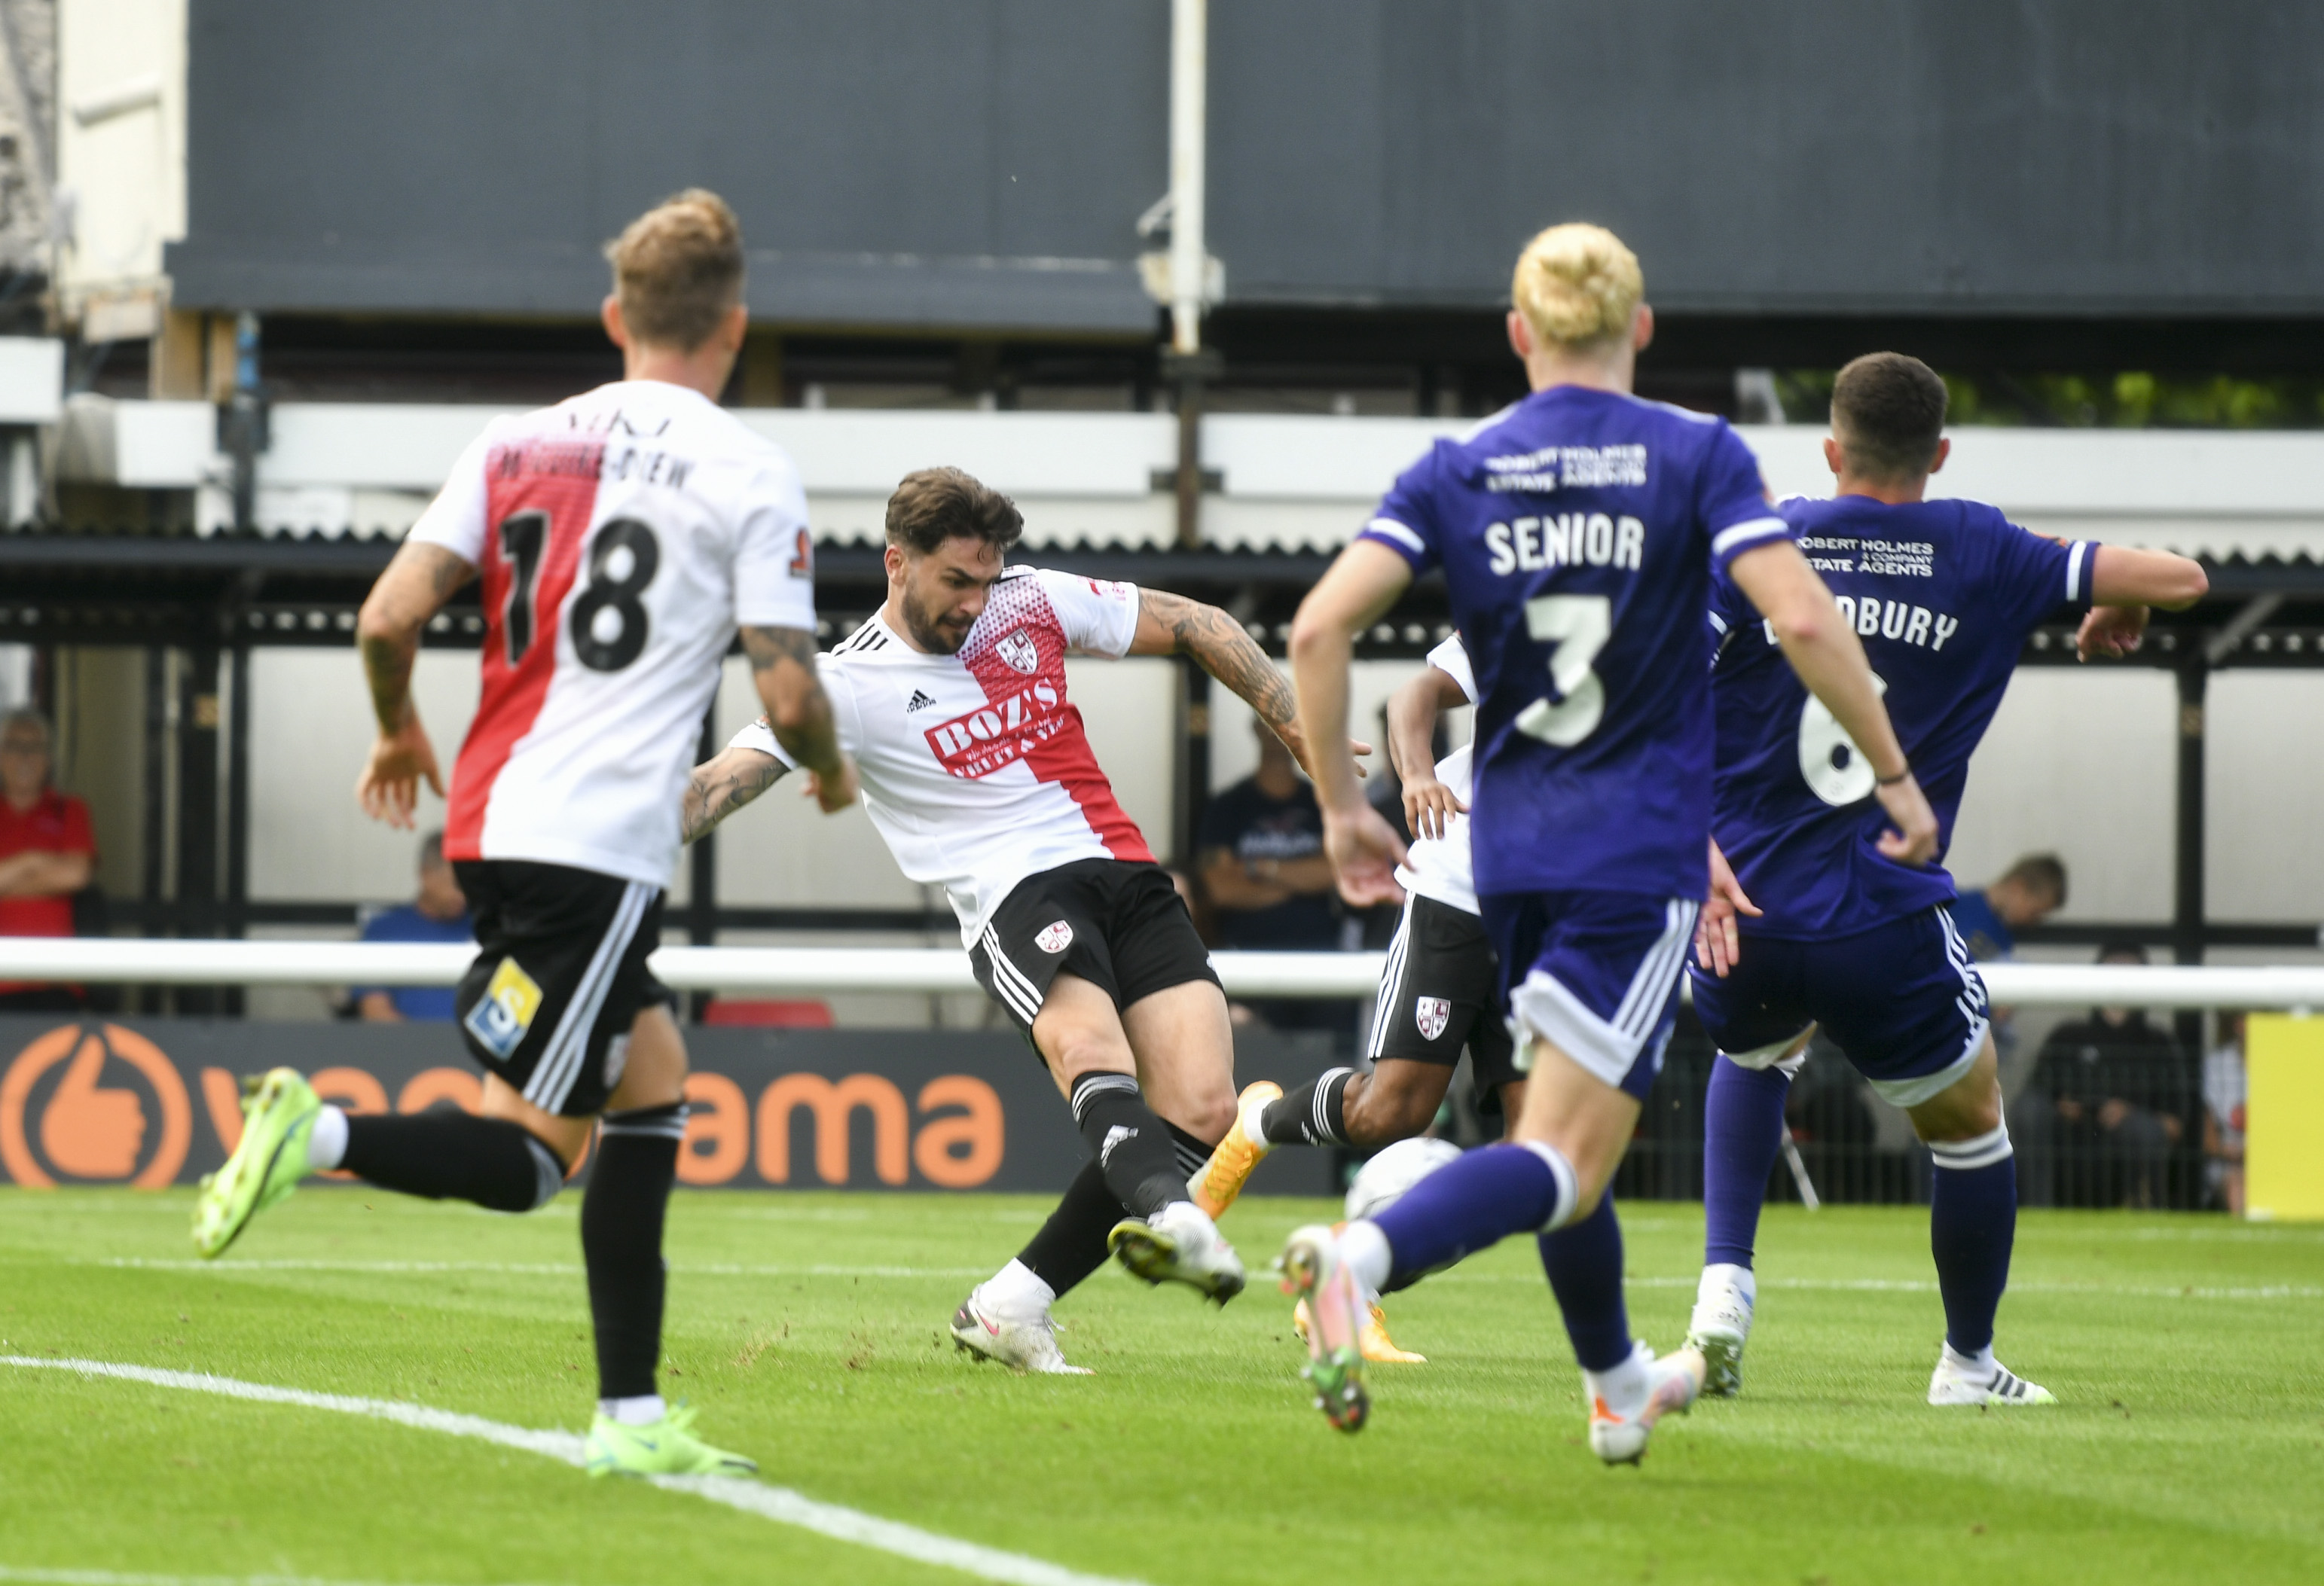 Oakley puts the ball away neatly for Woking's second